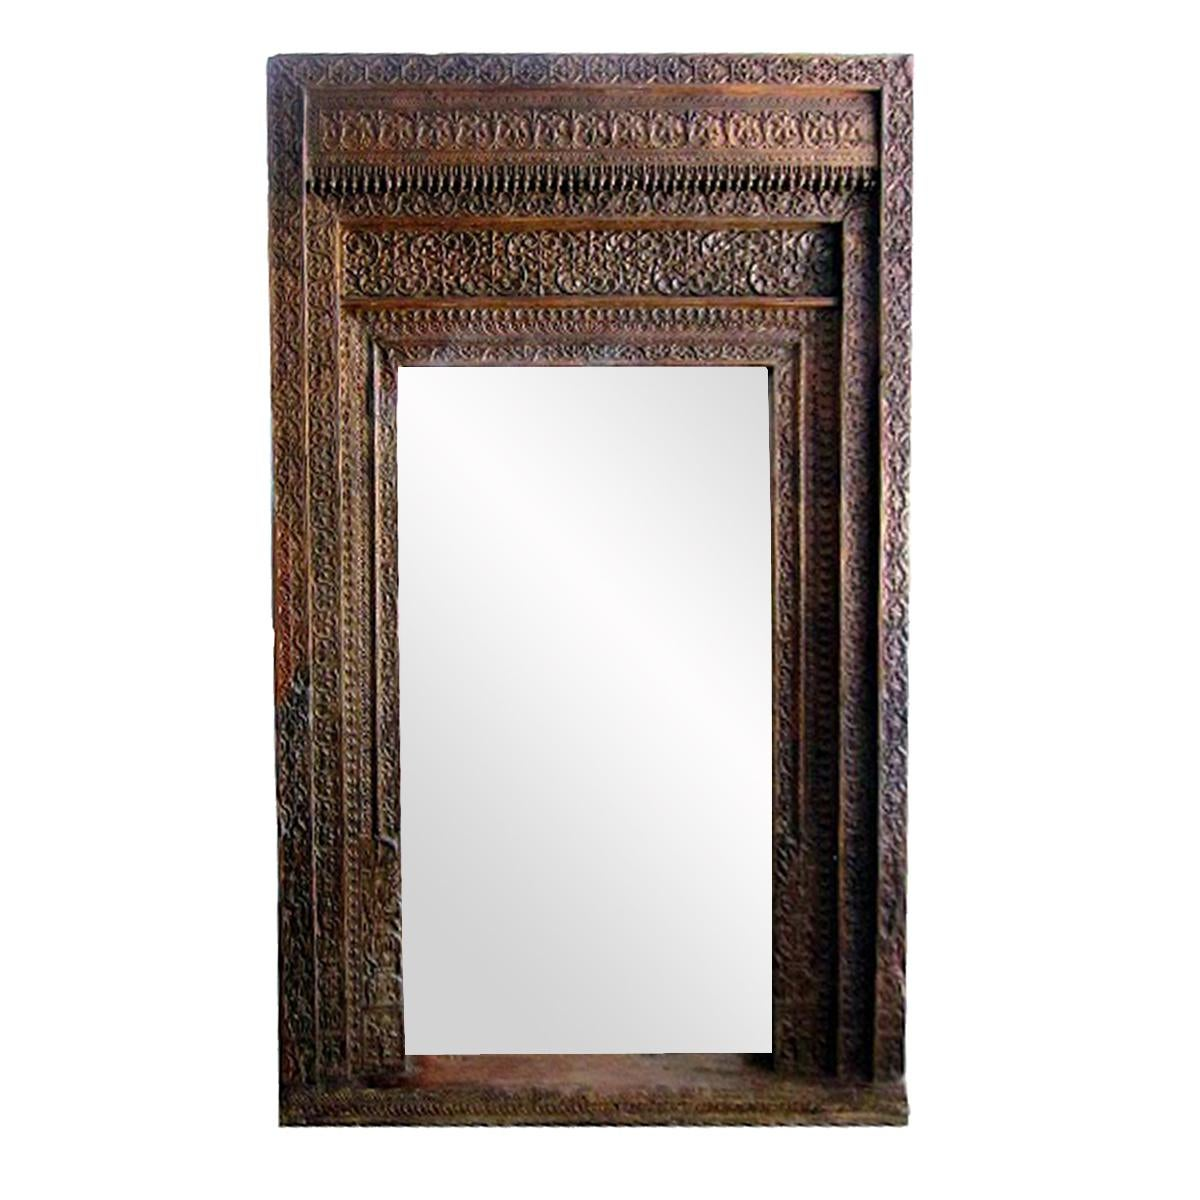 Great Vintage Old Door Mirror Frame. Carved Wood Doorway Repurposed Into A Full  Length Mirror Frame